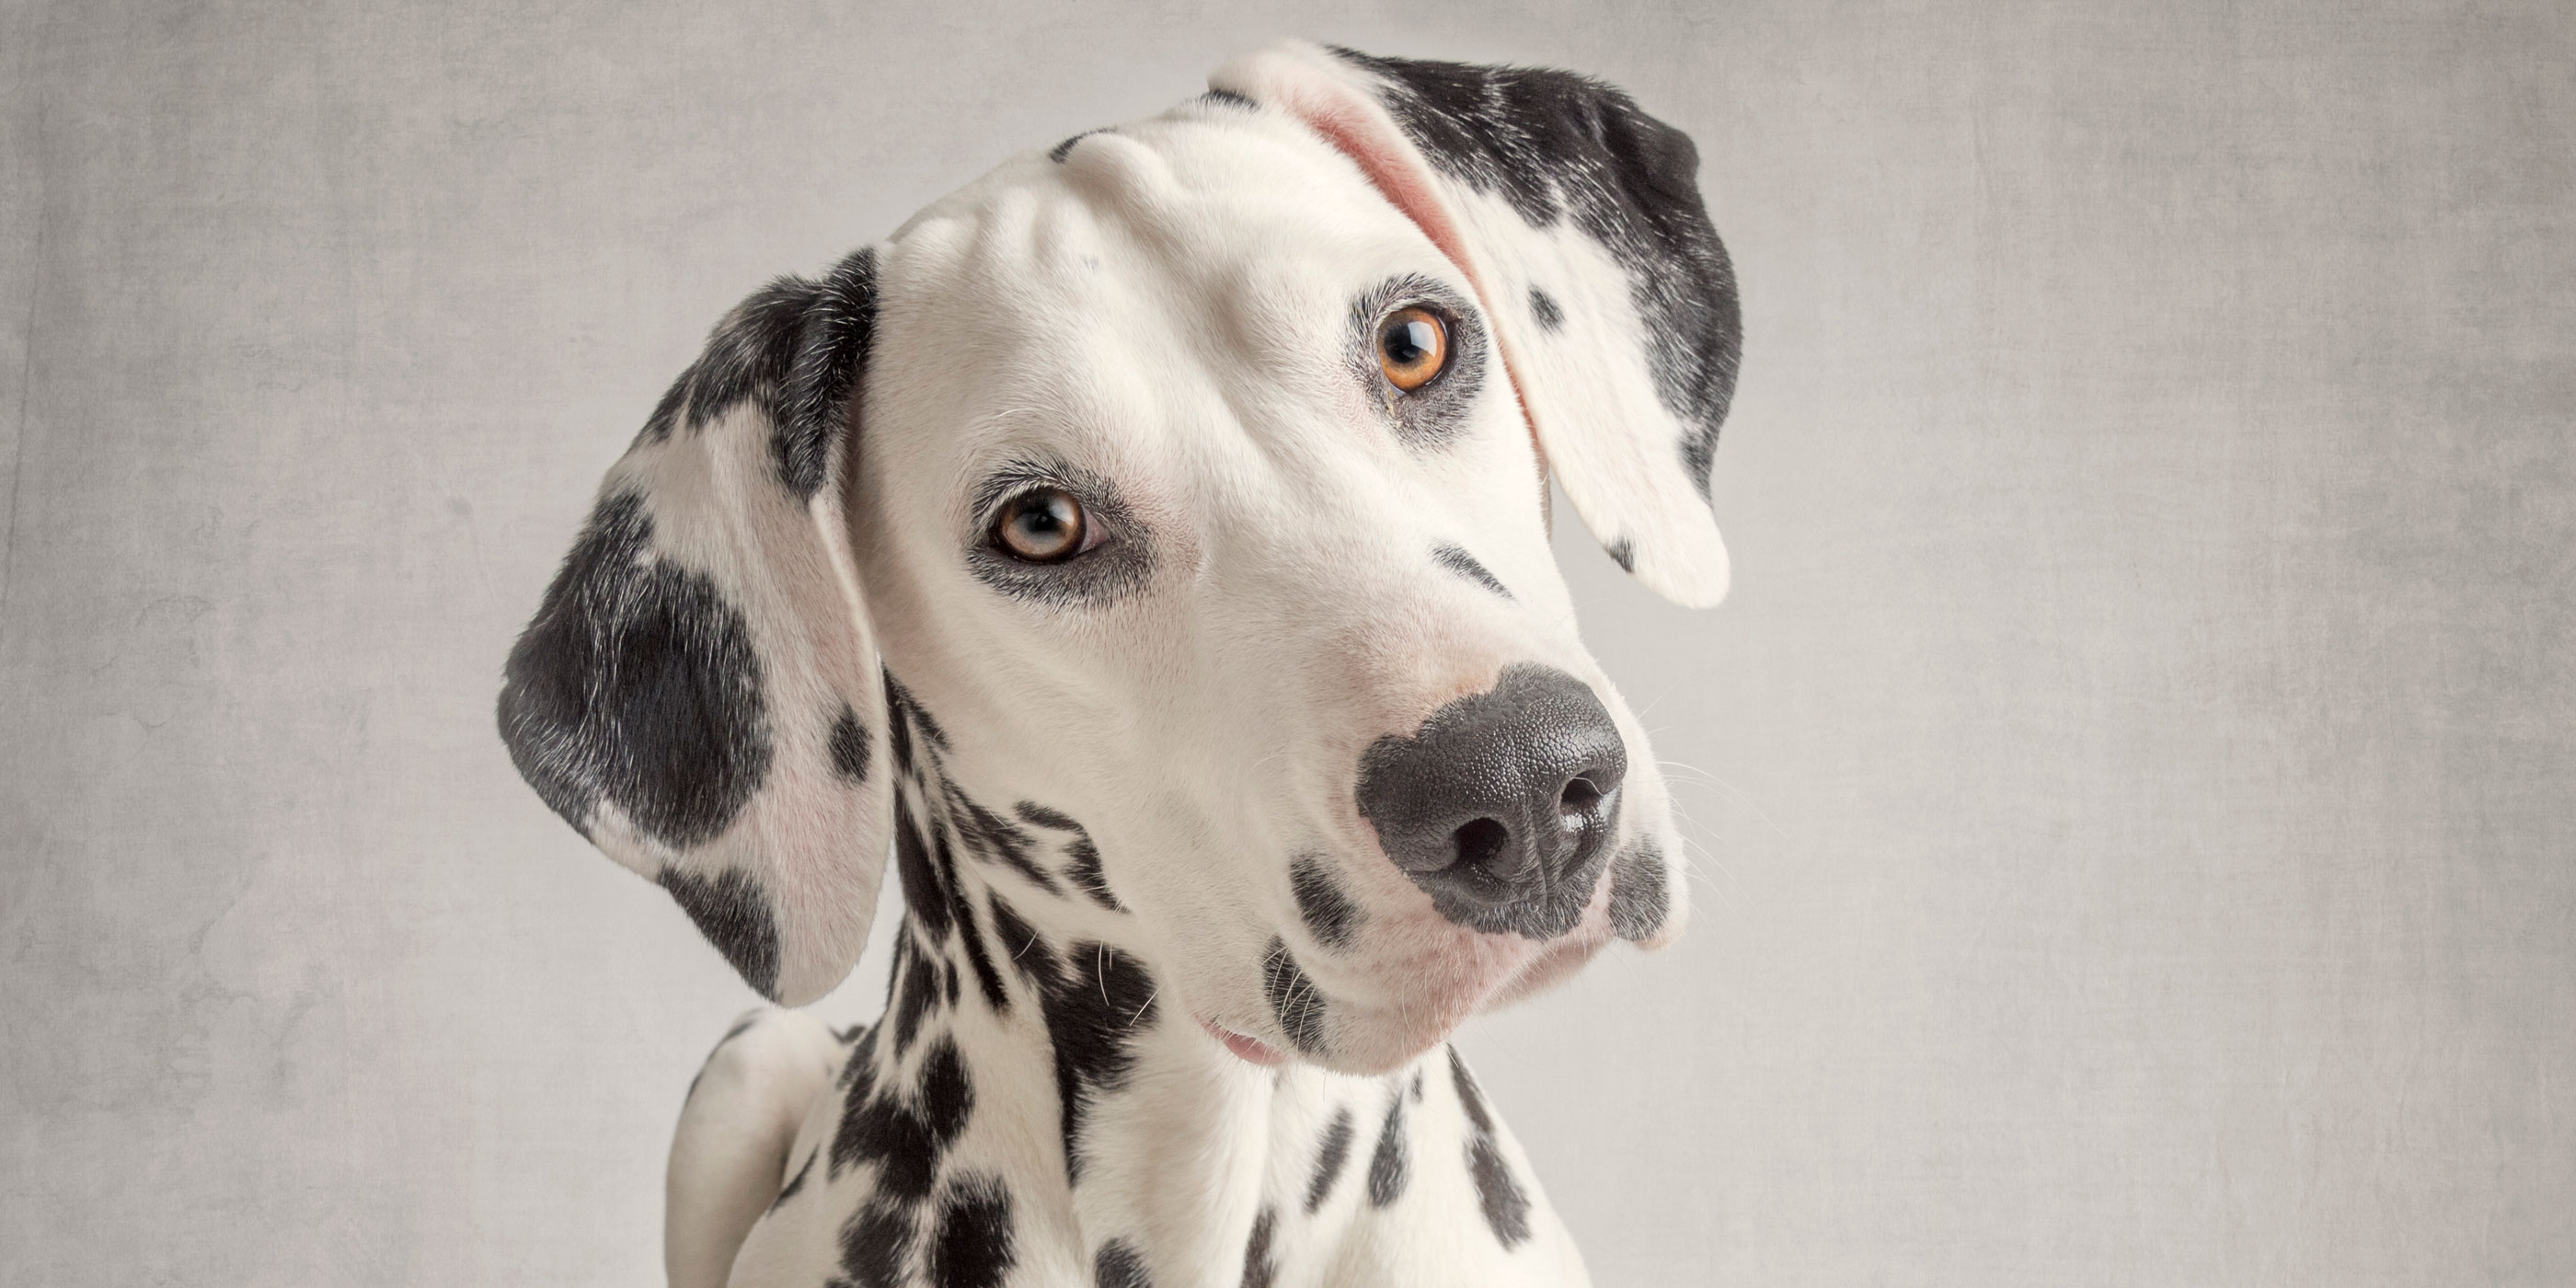 gentle eyed full face view dalmatian